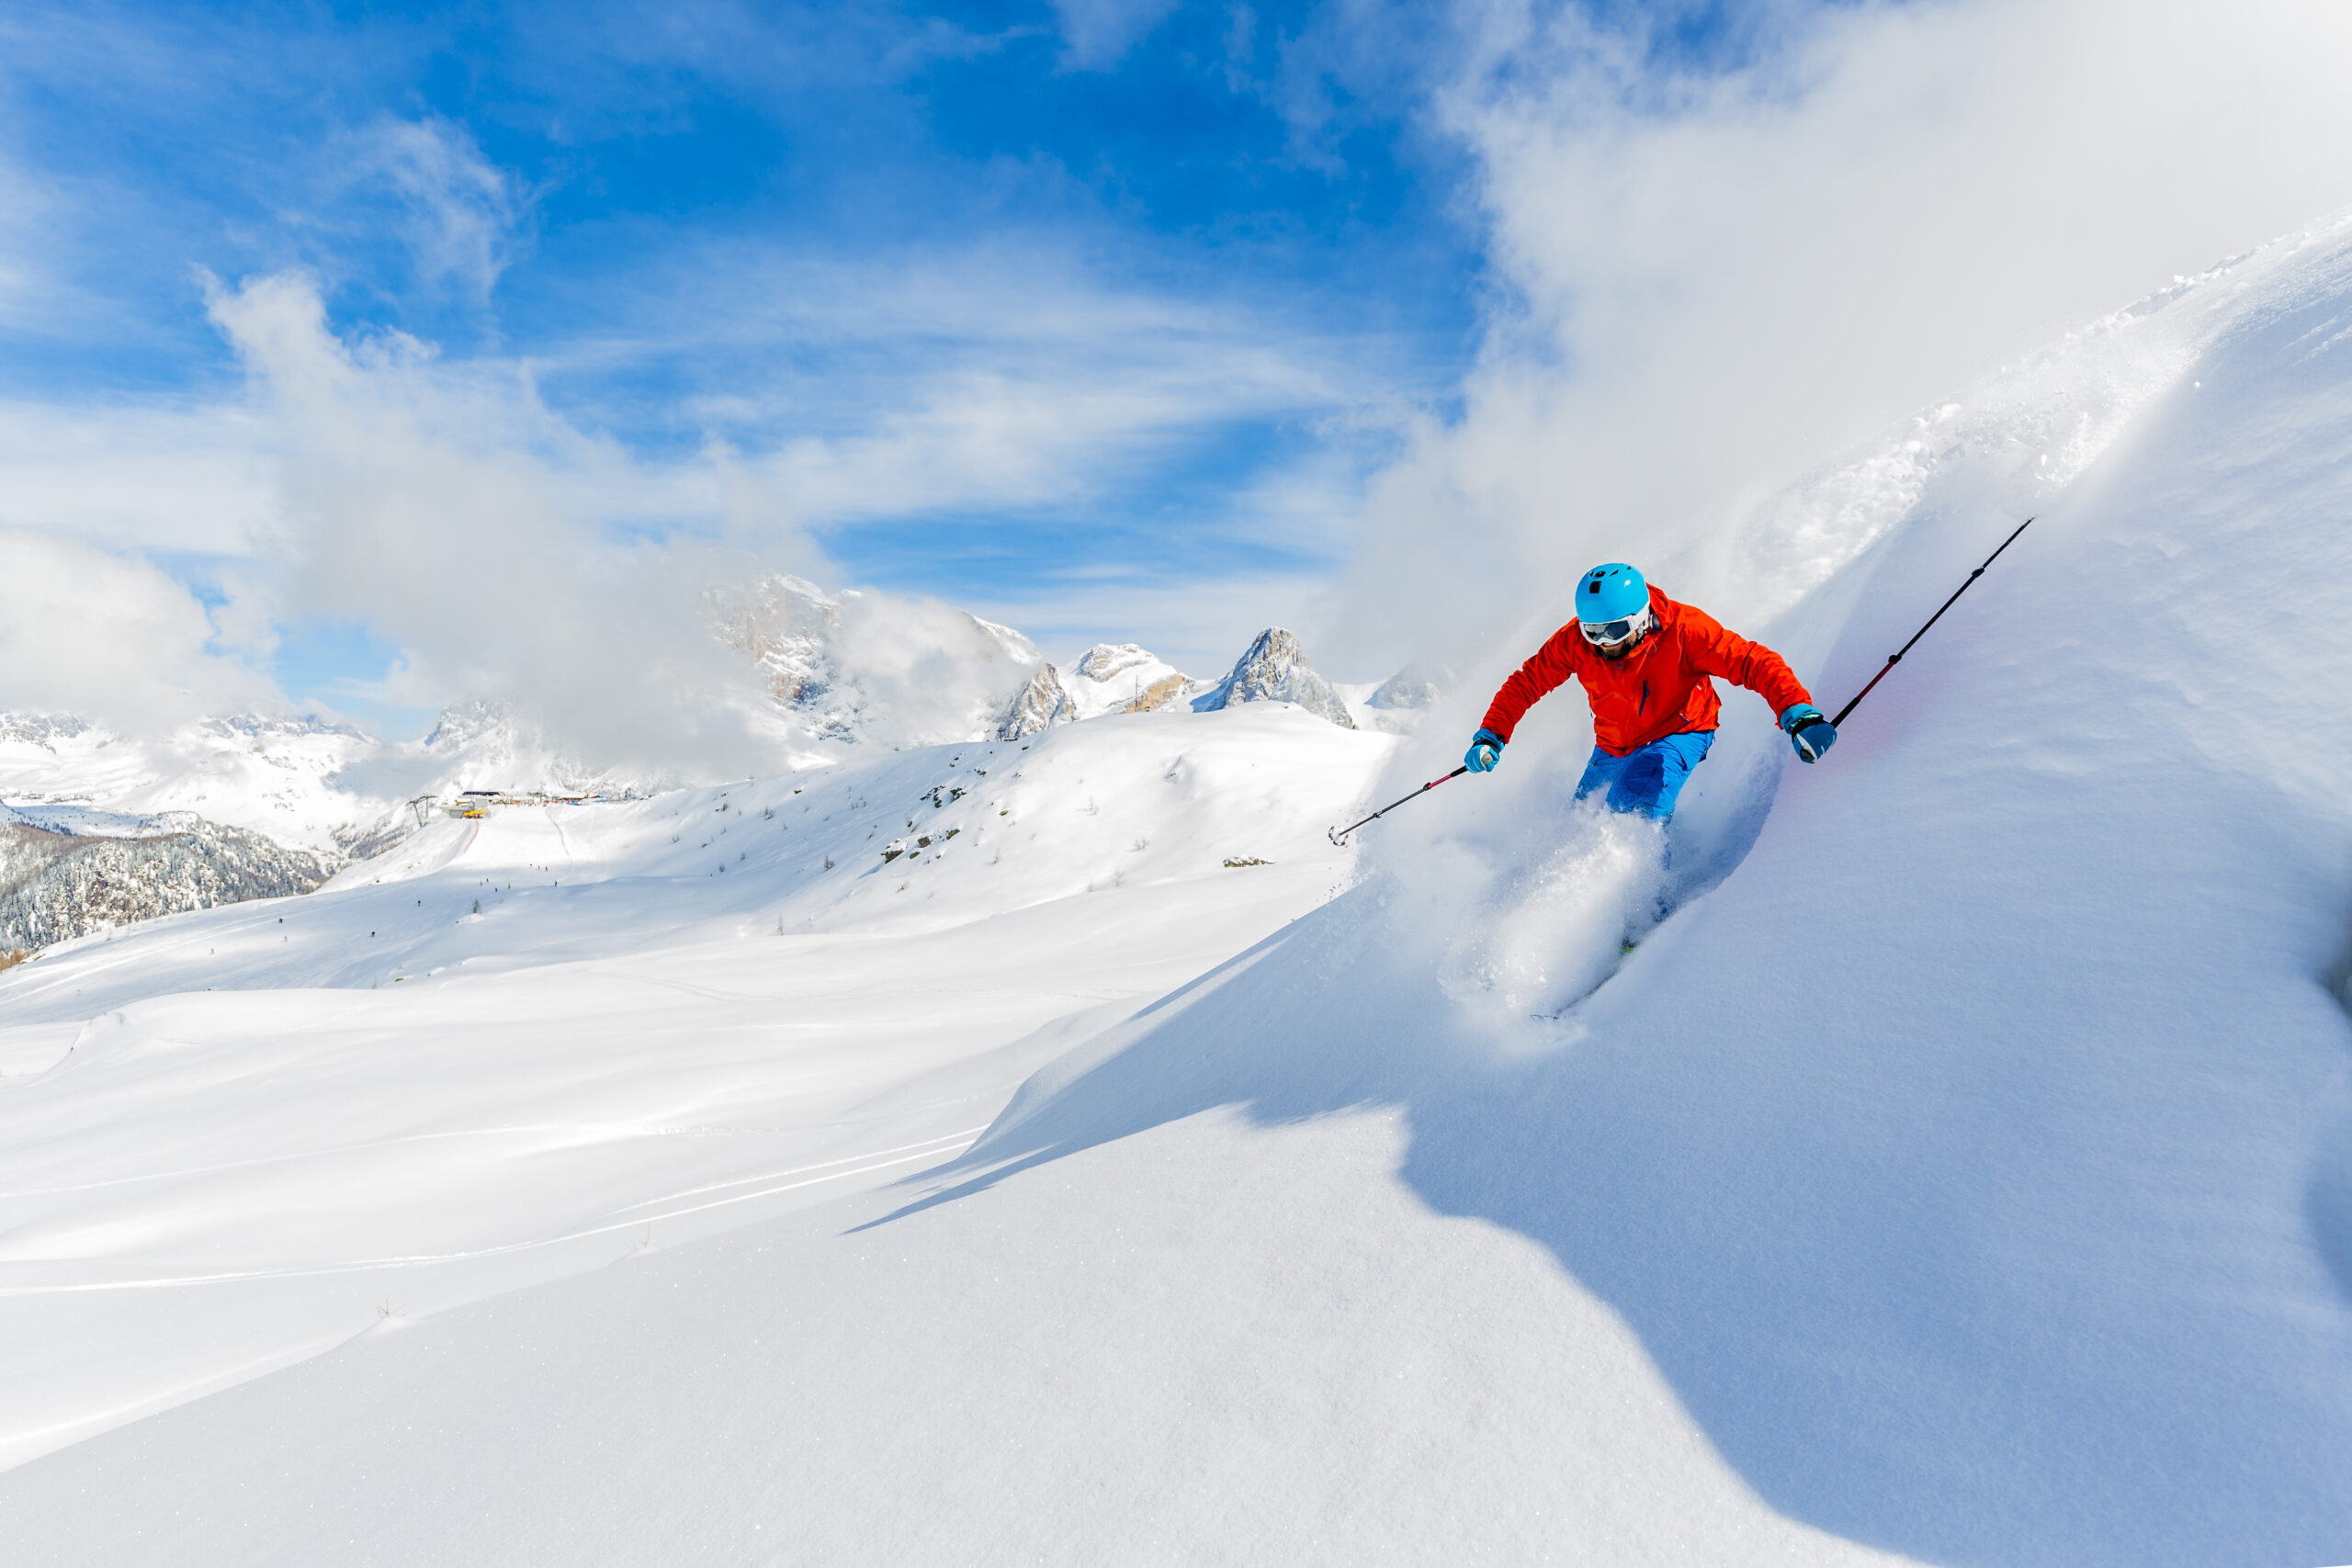 Skier skiing high in mountains in fresh powder snow.